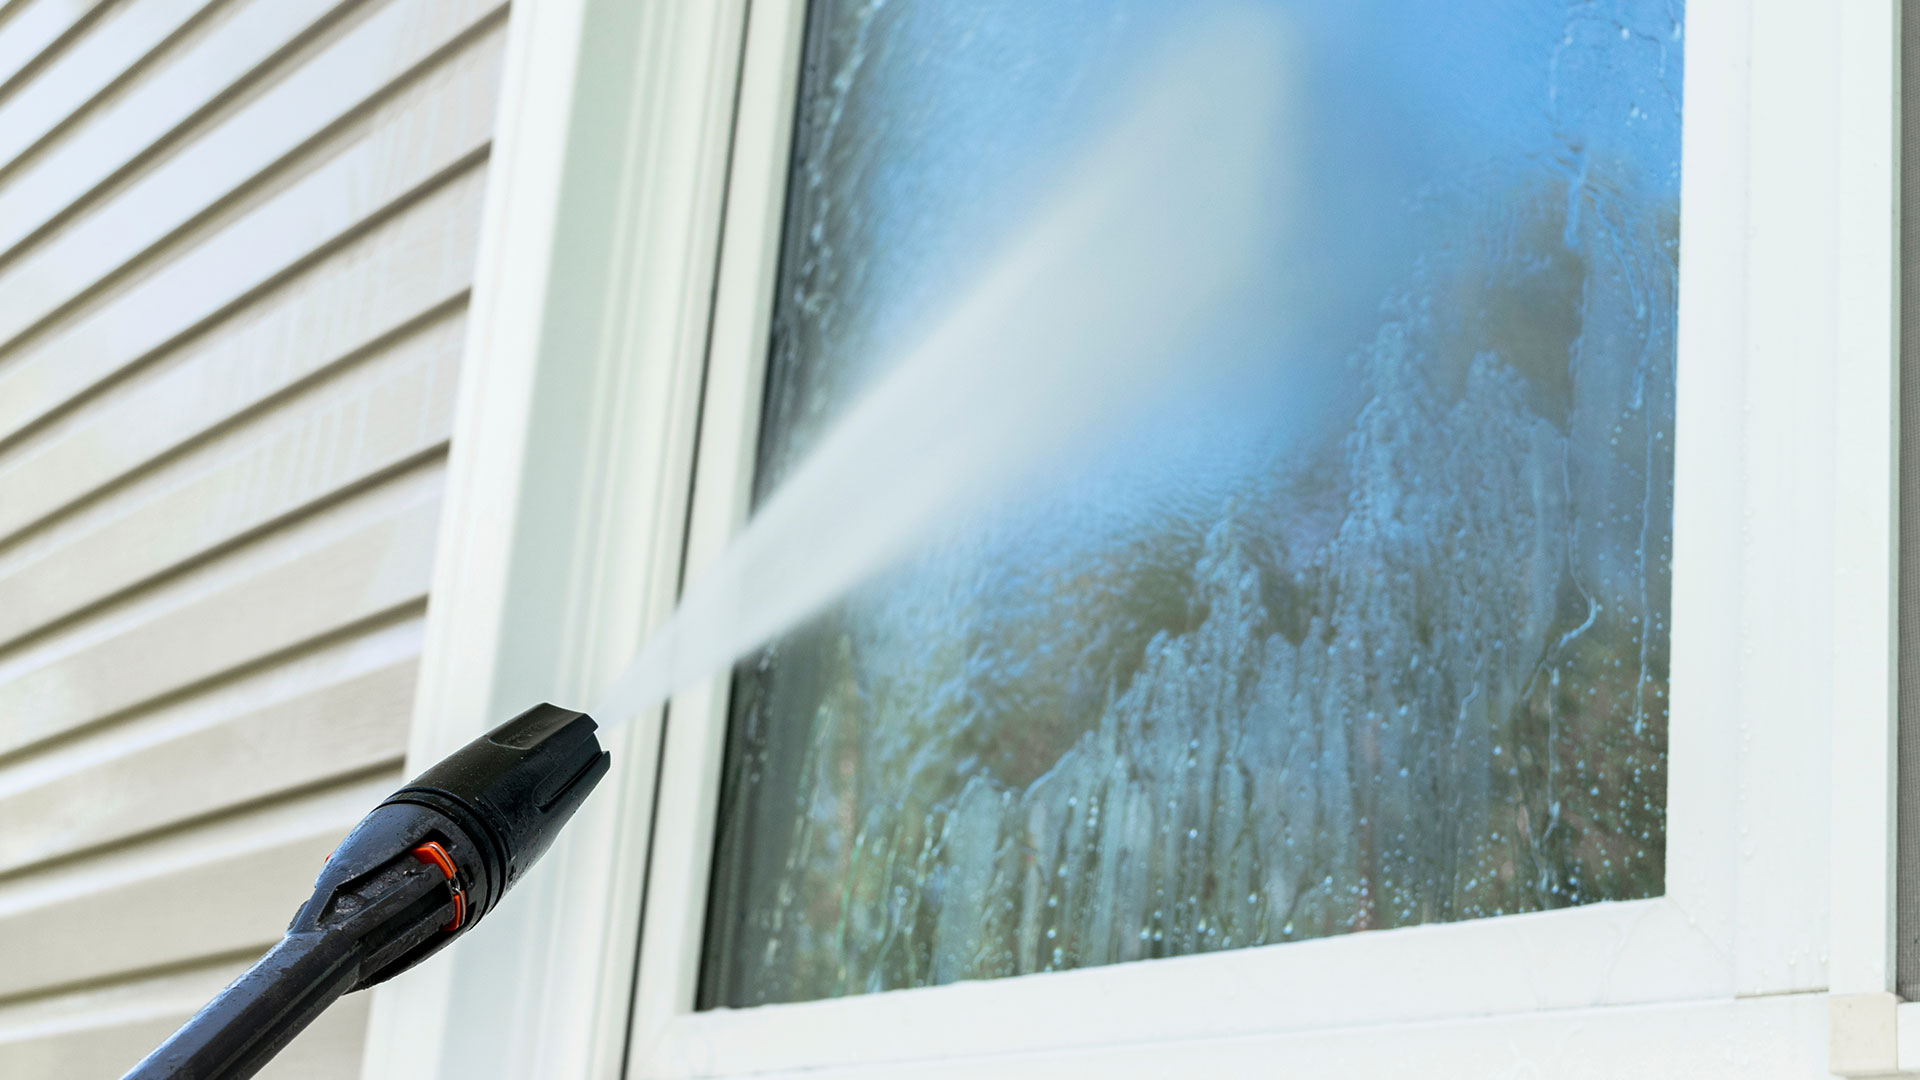 Window cleaning services at a home property in Calgary, Alberta.